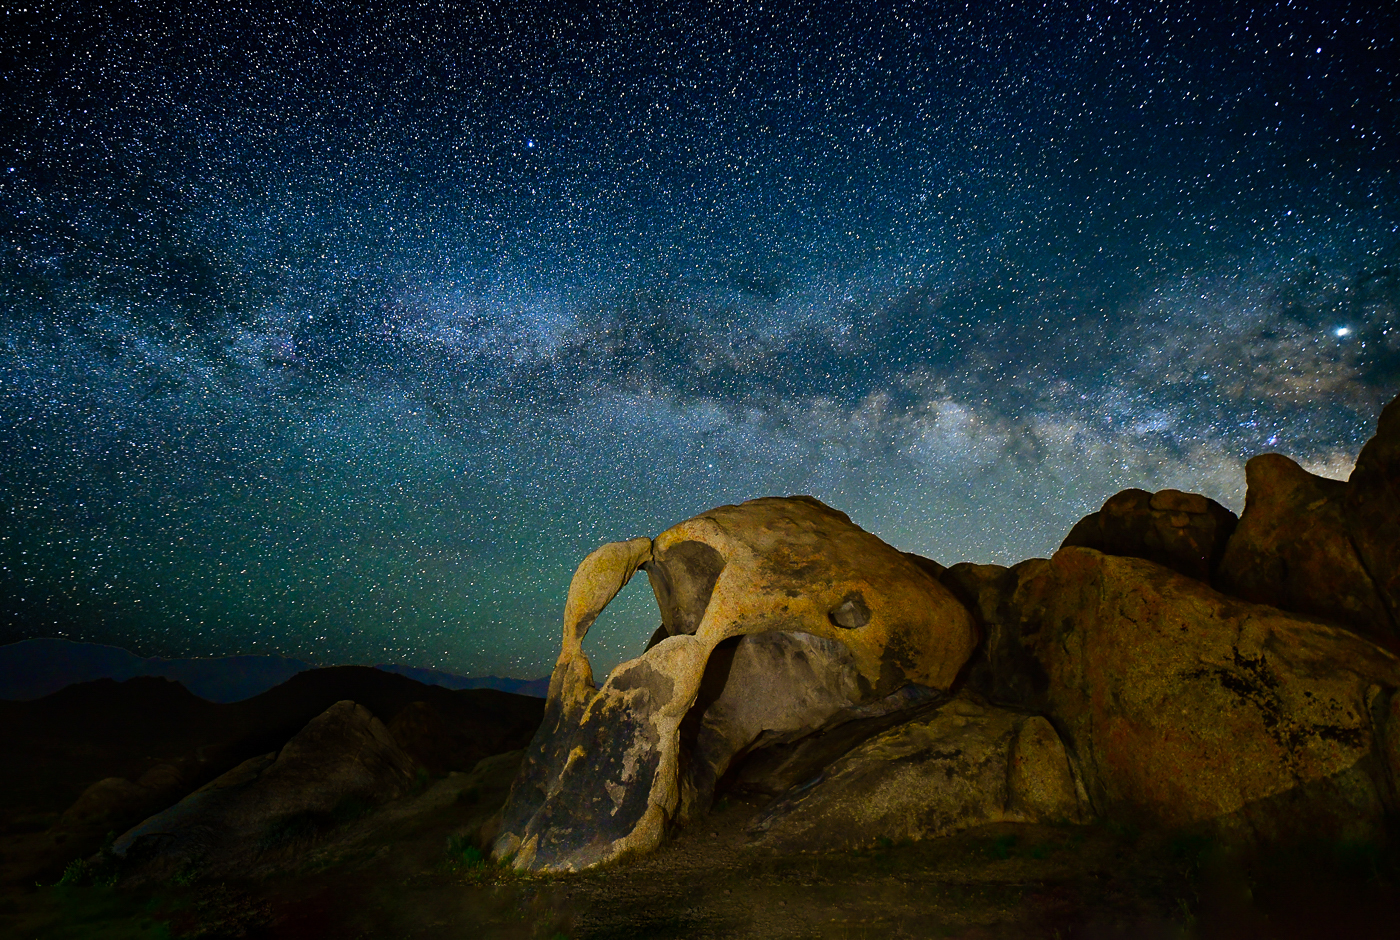 35Open_Lily_Chang_1_Cyclops_Arch_under_Milky_Way